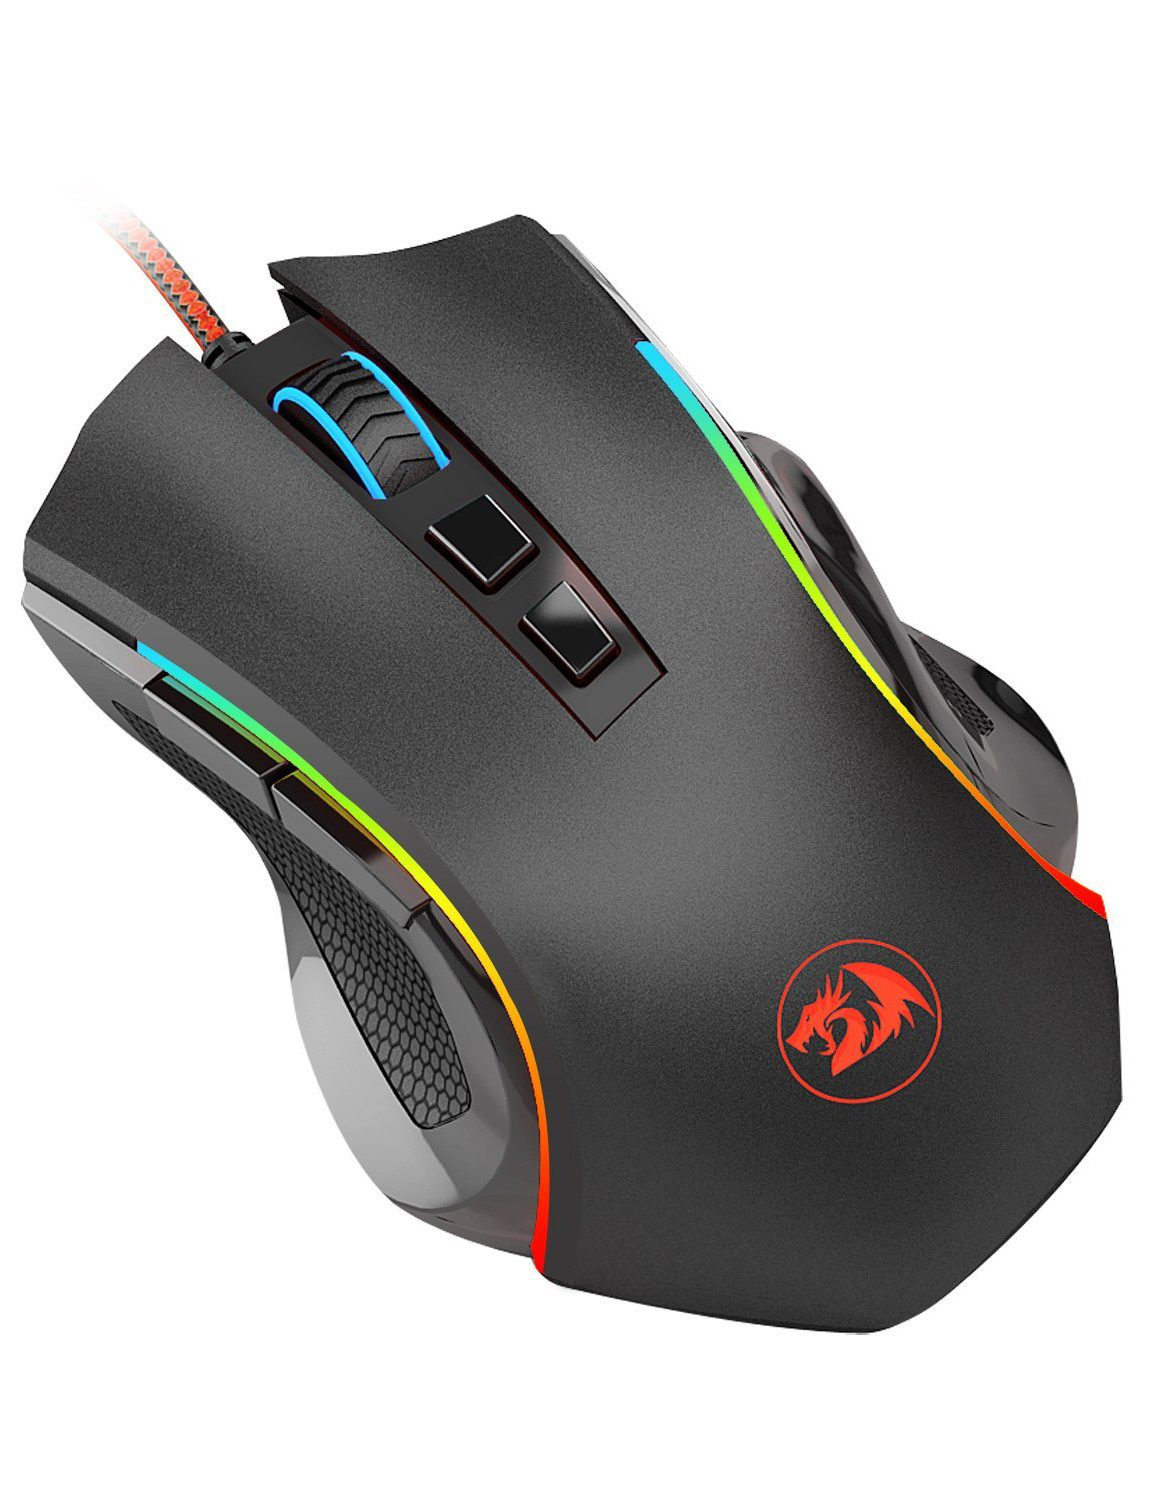 Gaming Mouse LED RGB Wired MMO PC Gaming Mouse Ergonomic High-Precision 7 Buttons Programmable Gaming Mouse Total 8